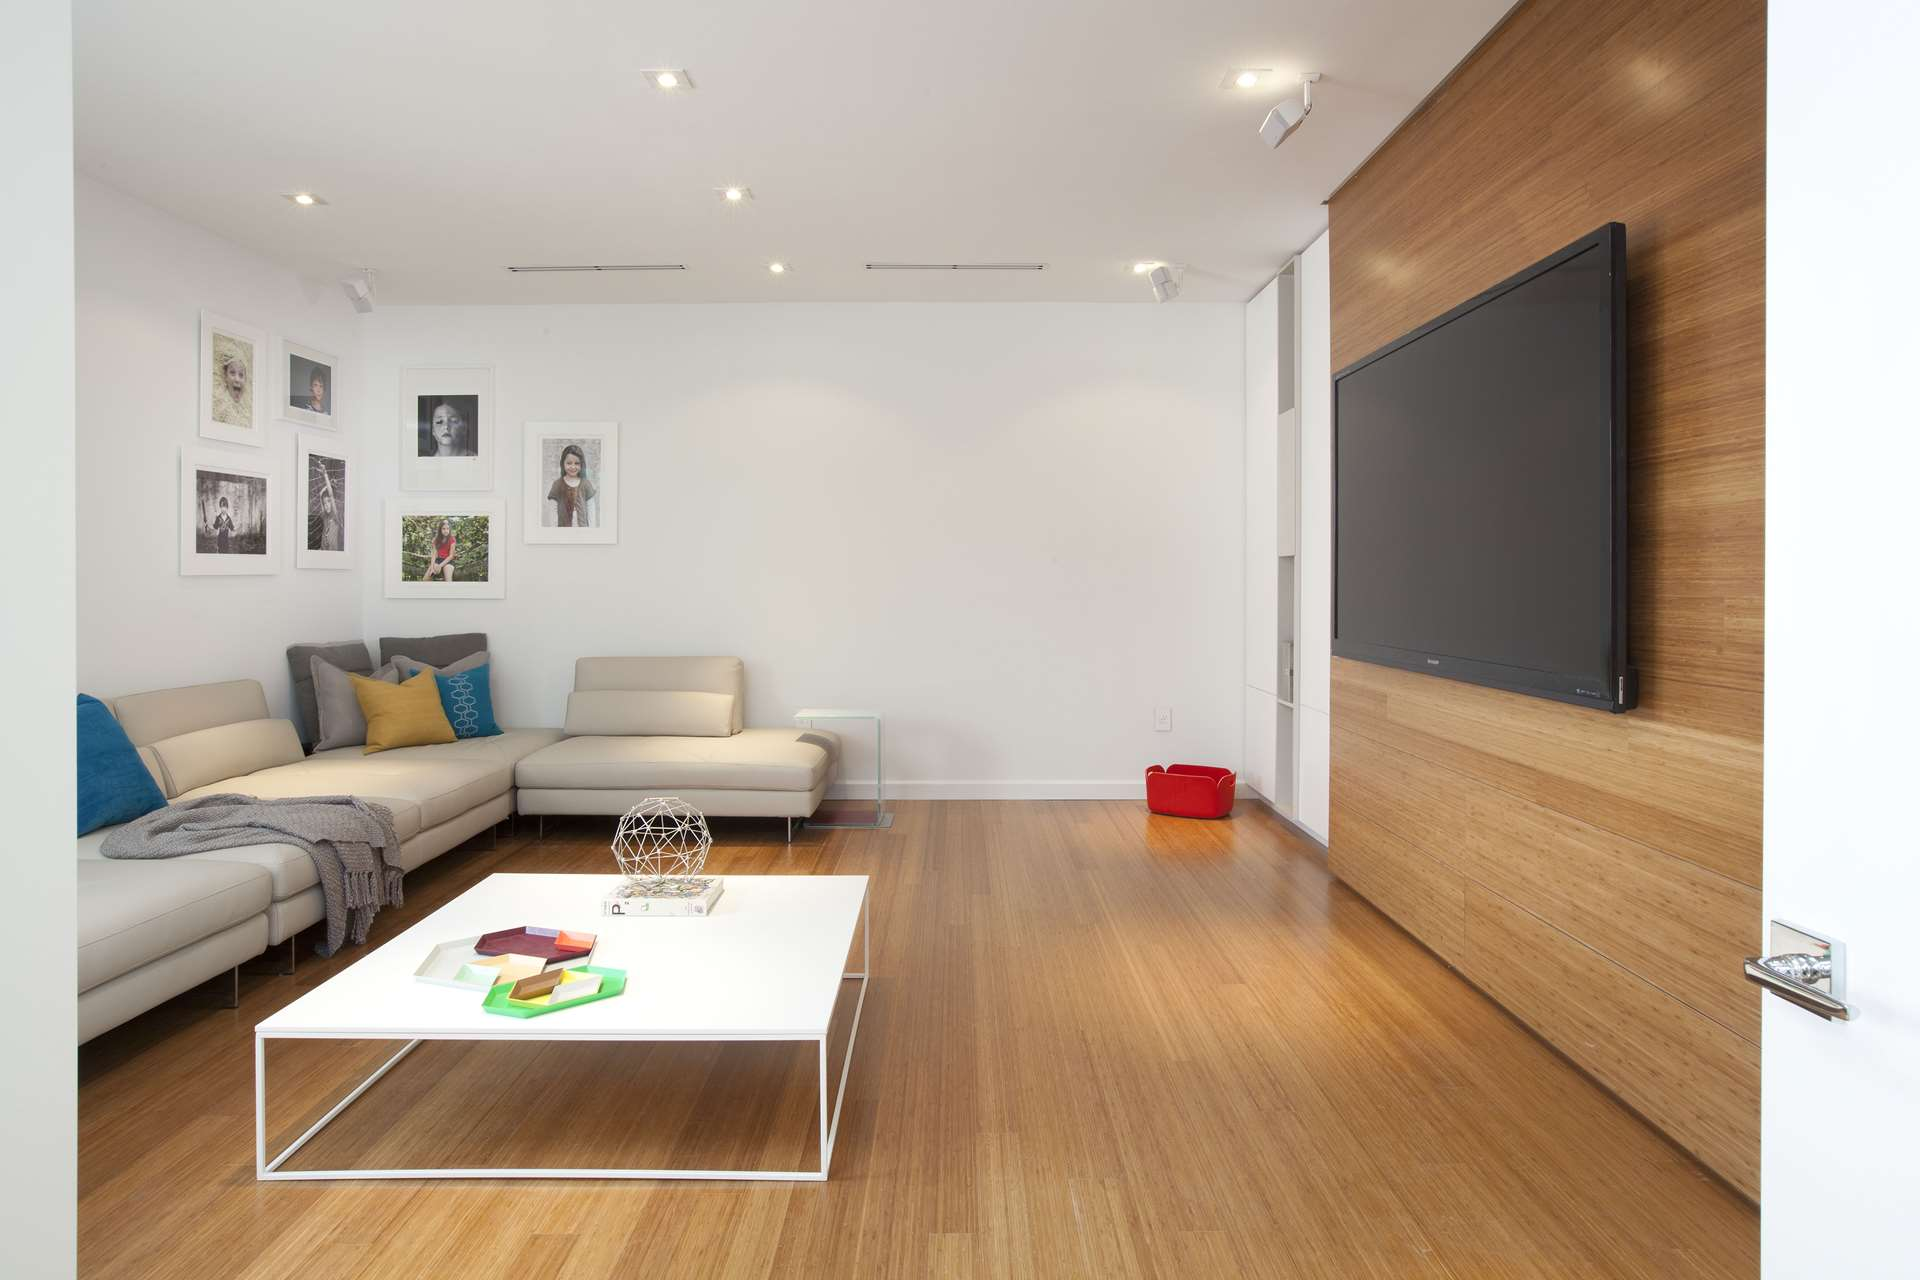 Modern Flat Bed Detailed Minimalism By Dkor Interiors Minimalist